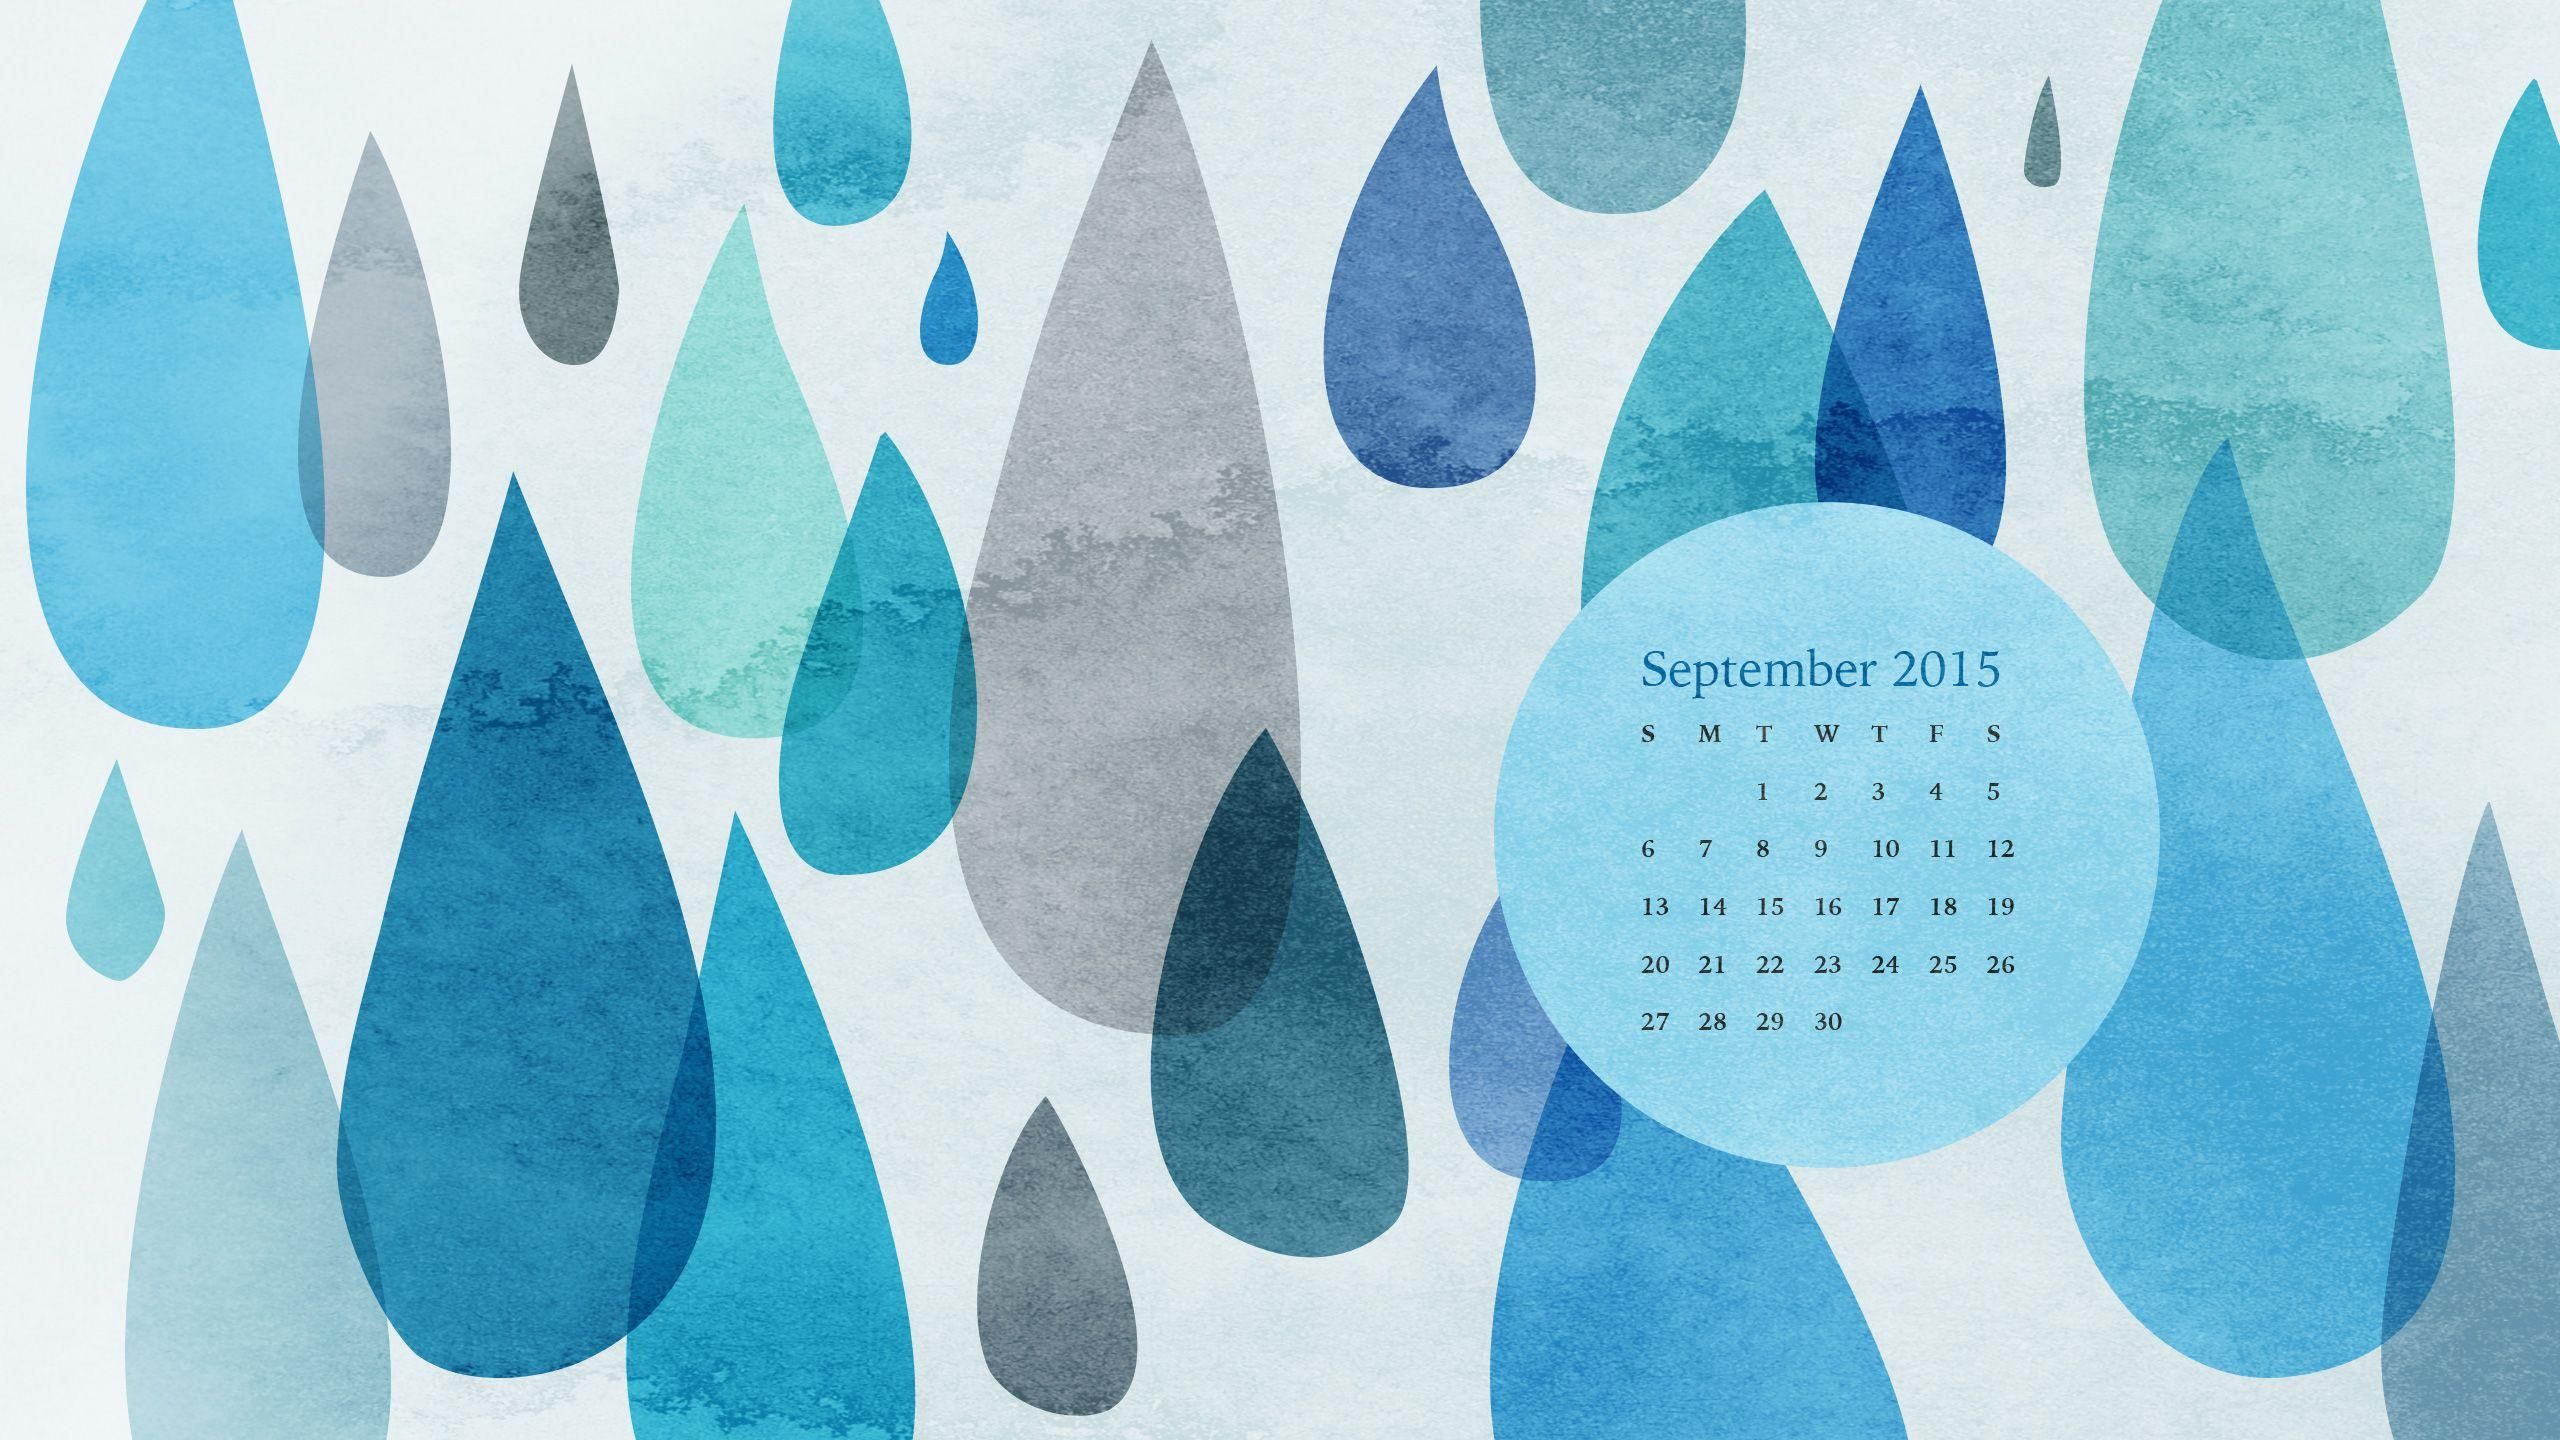 september 2015 wallpaper calendar - photo #13